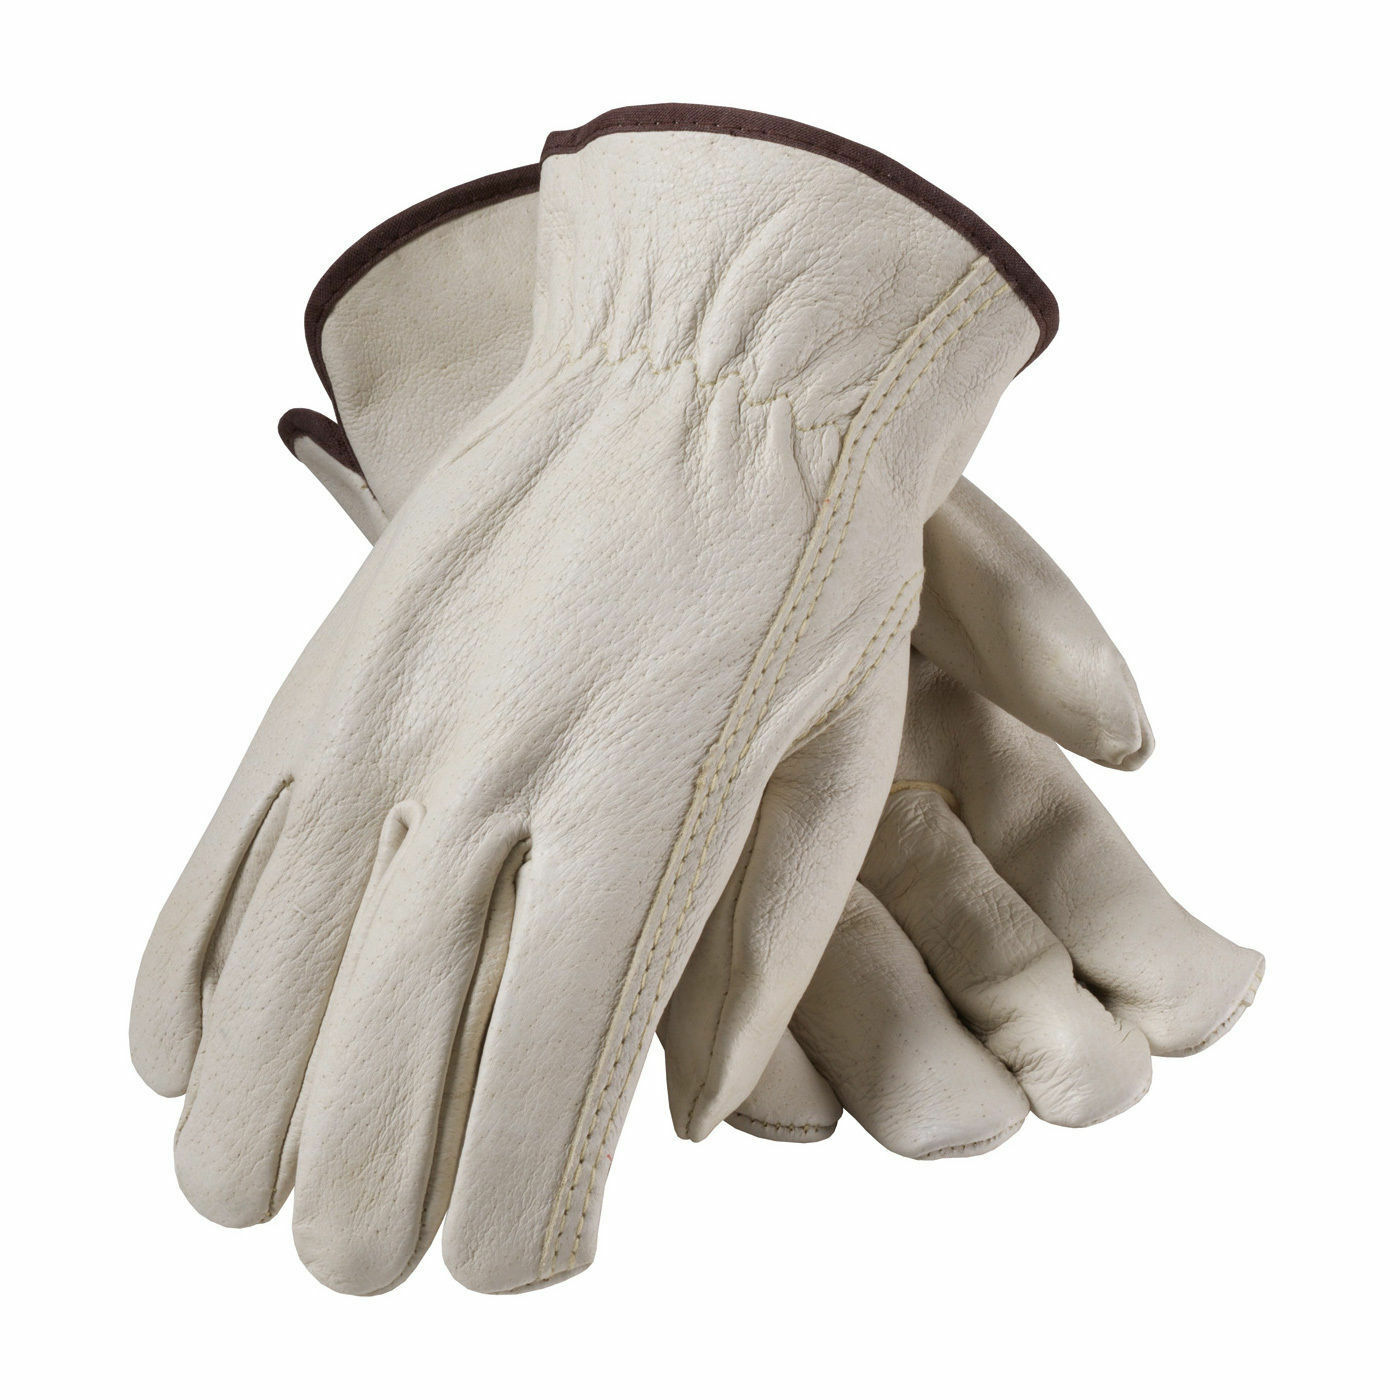 Leather work gloves ebay - How To Choose The Best Leather Gloves For Work